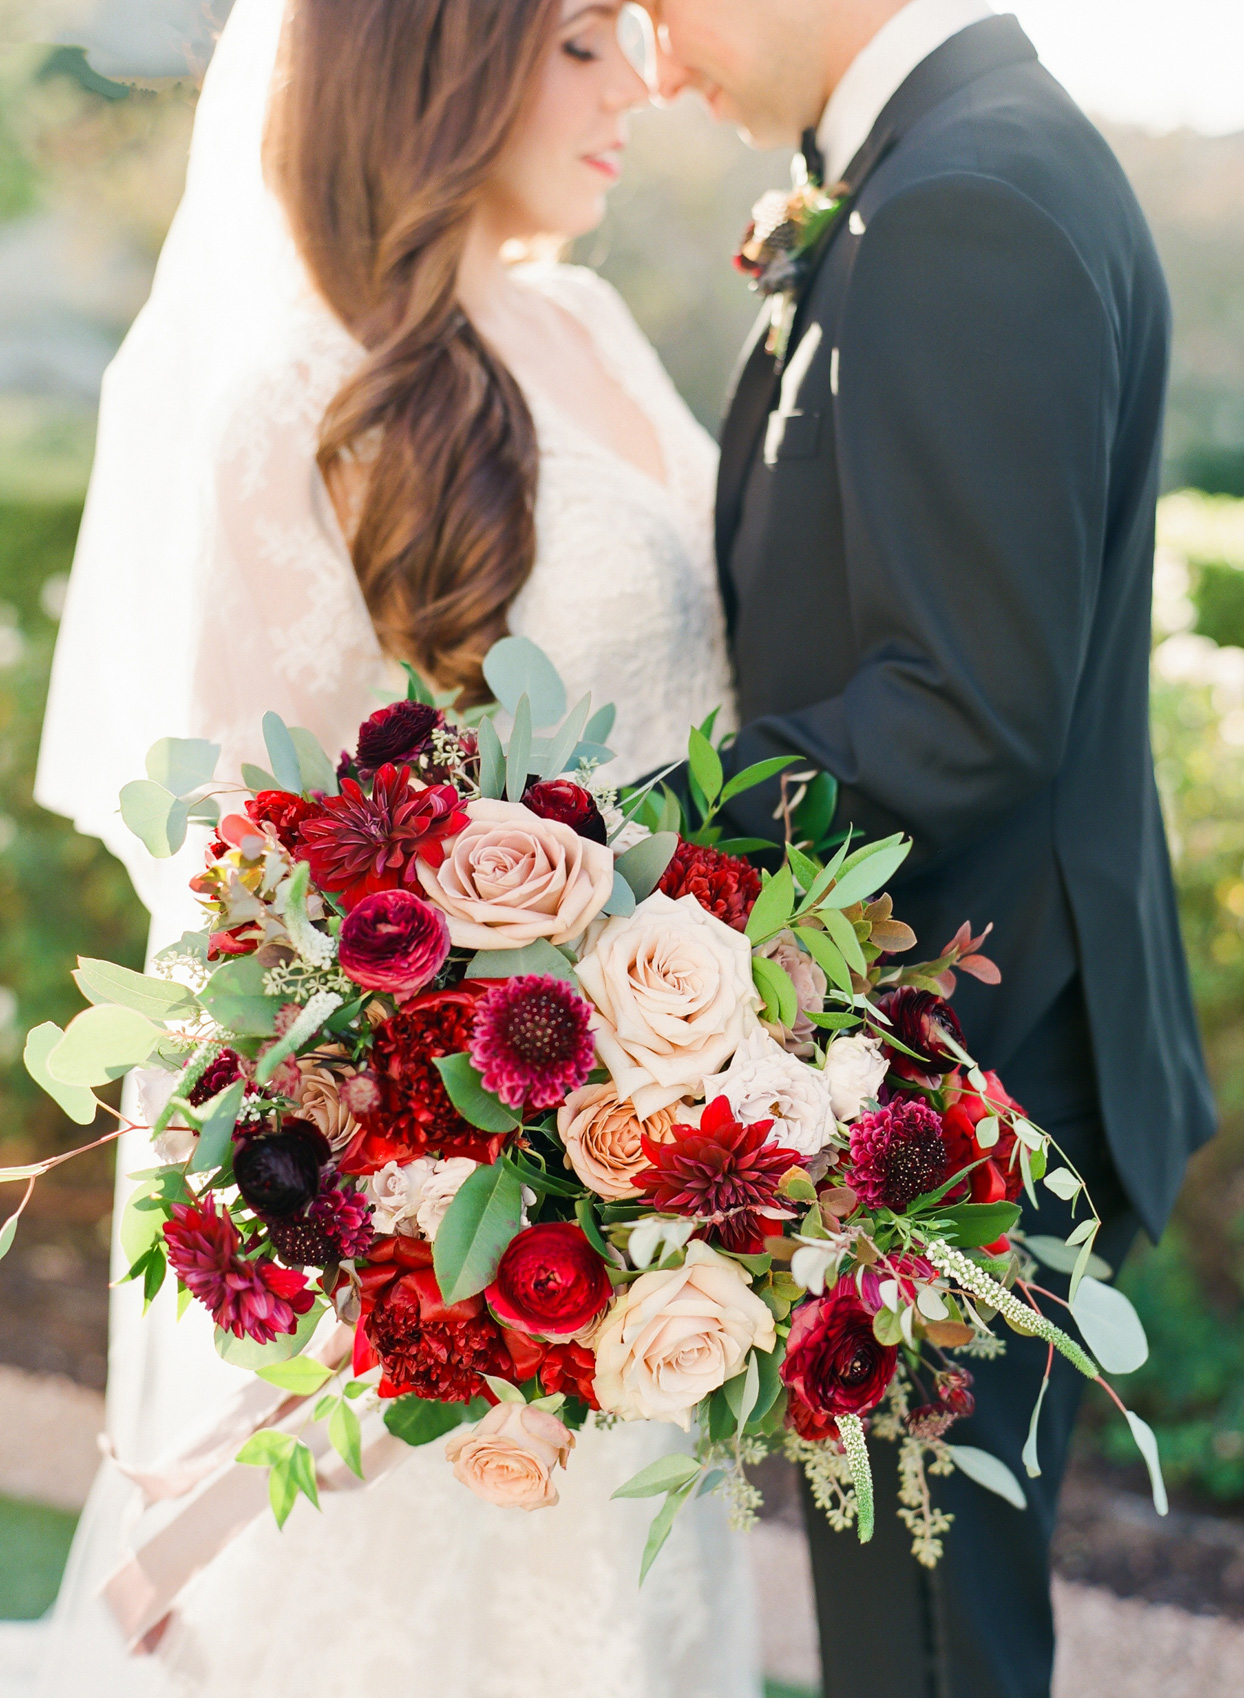 couple posing with lush red and pink floral bouquet